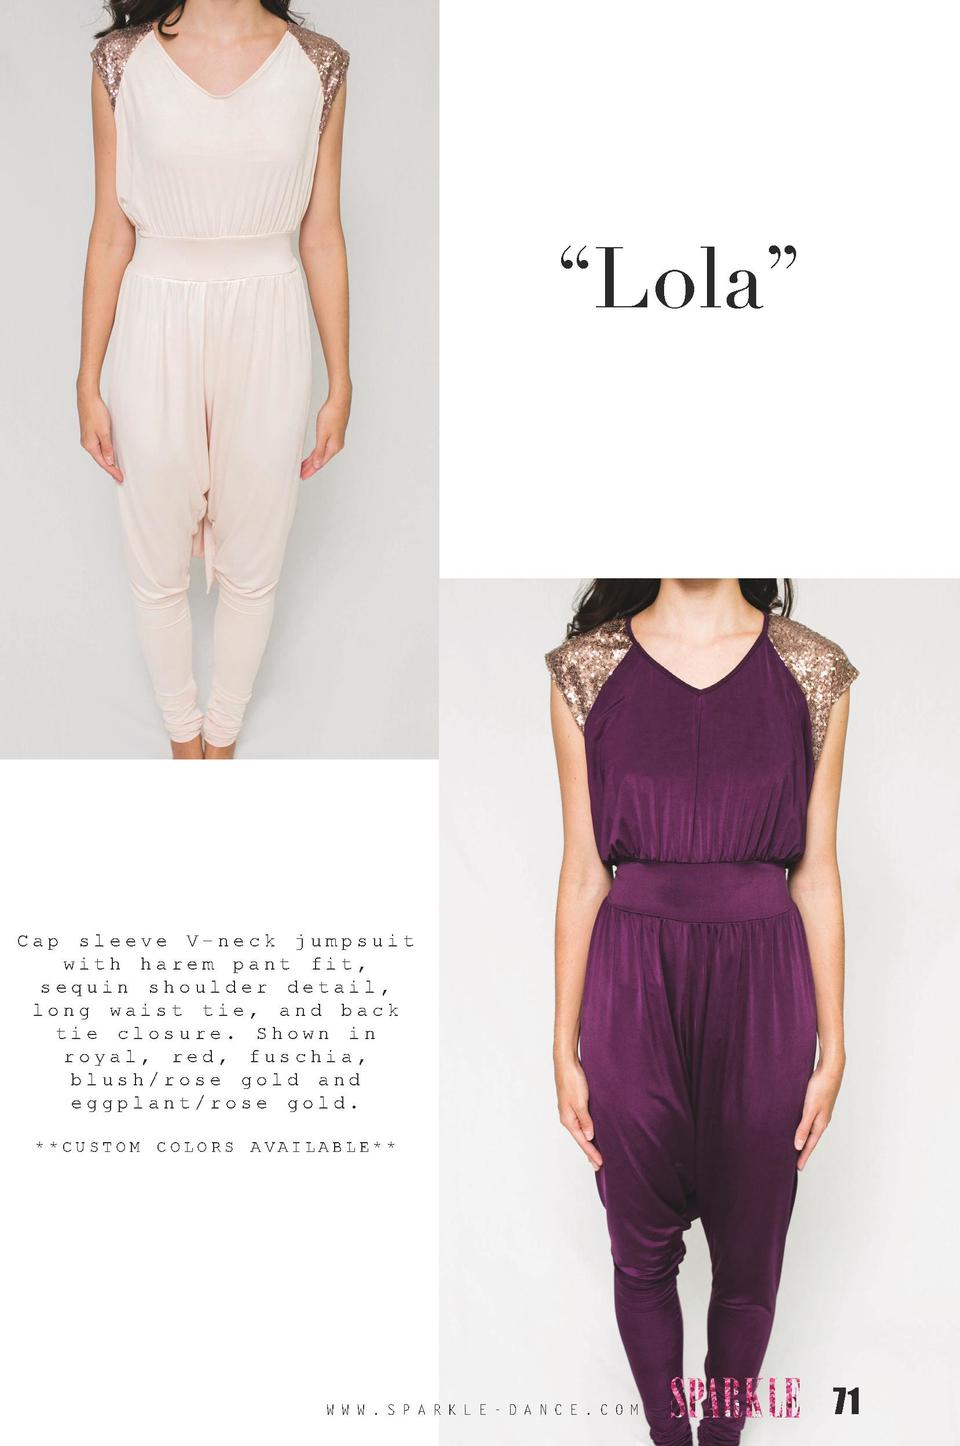 Lola     Cap  sleeve V-neck jumpsuit with harem pant fit, sequin shoulder detail, long waist tie, and back tie closure....